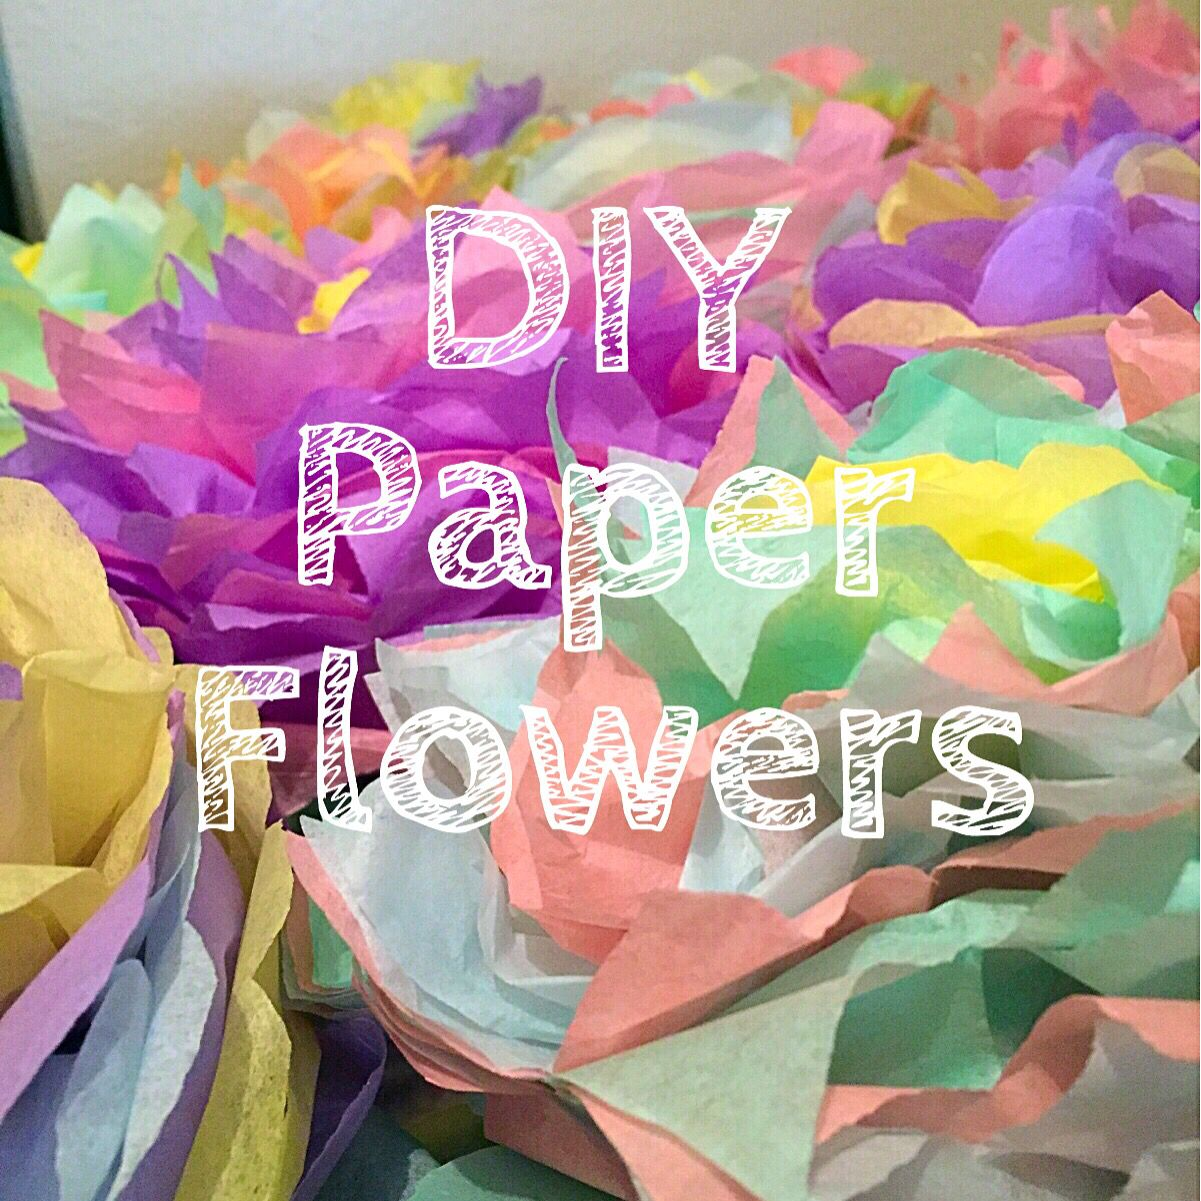 DIY Paper flower tutorial is up on the blog now! Link in bio. First Time Mommy Blog/ DIY/ DIY flowers. / crafts/ crafting / fun / moms / moms who craft/ love / life/ parties / birthday/ wedding / baby shower/ graduation / DIY home / beauty / pretty/ flowers / click / follow/ like